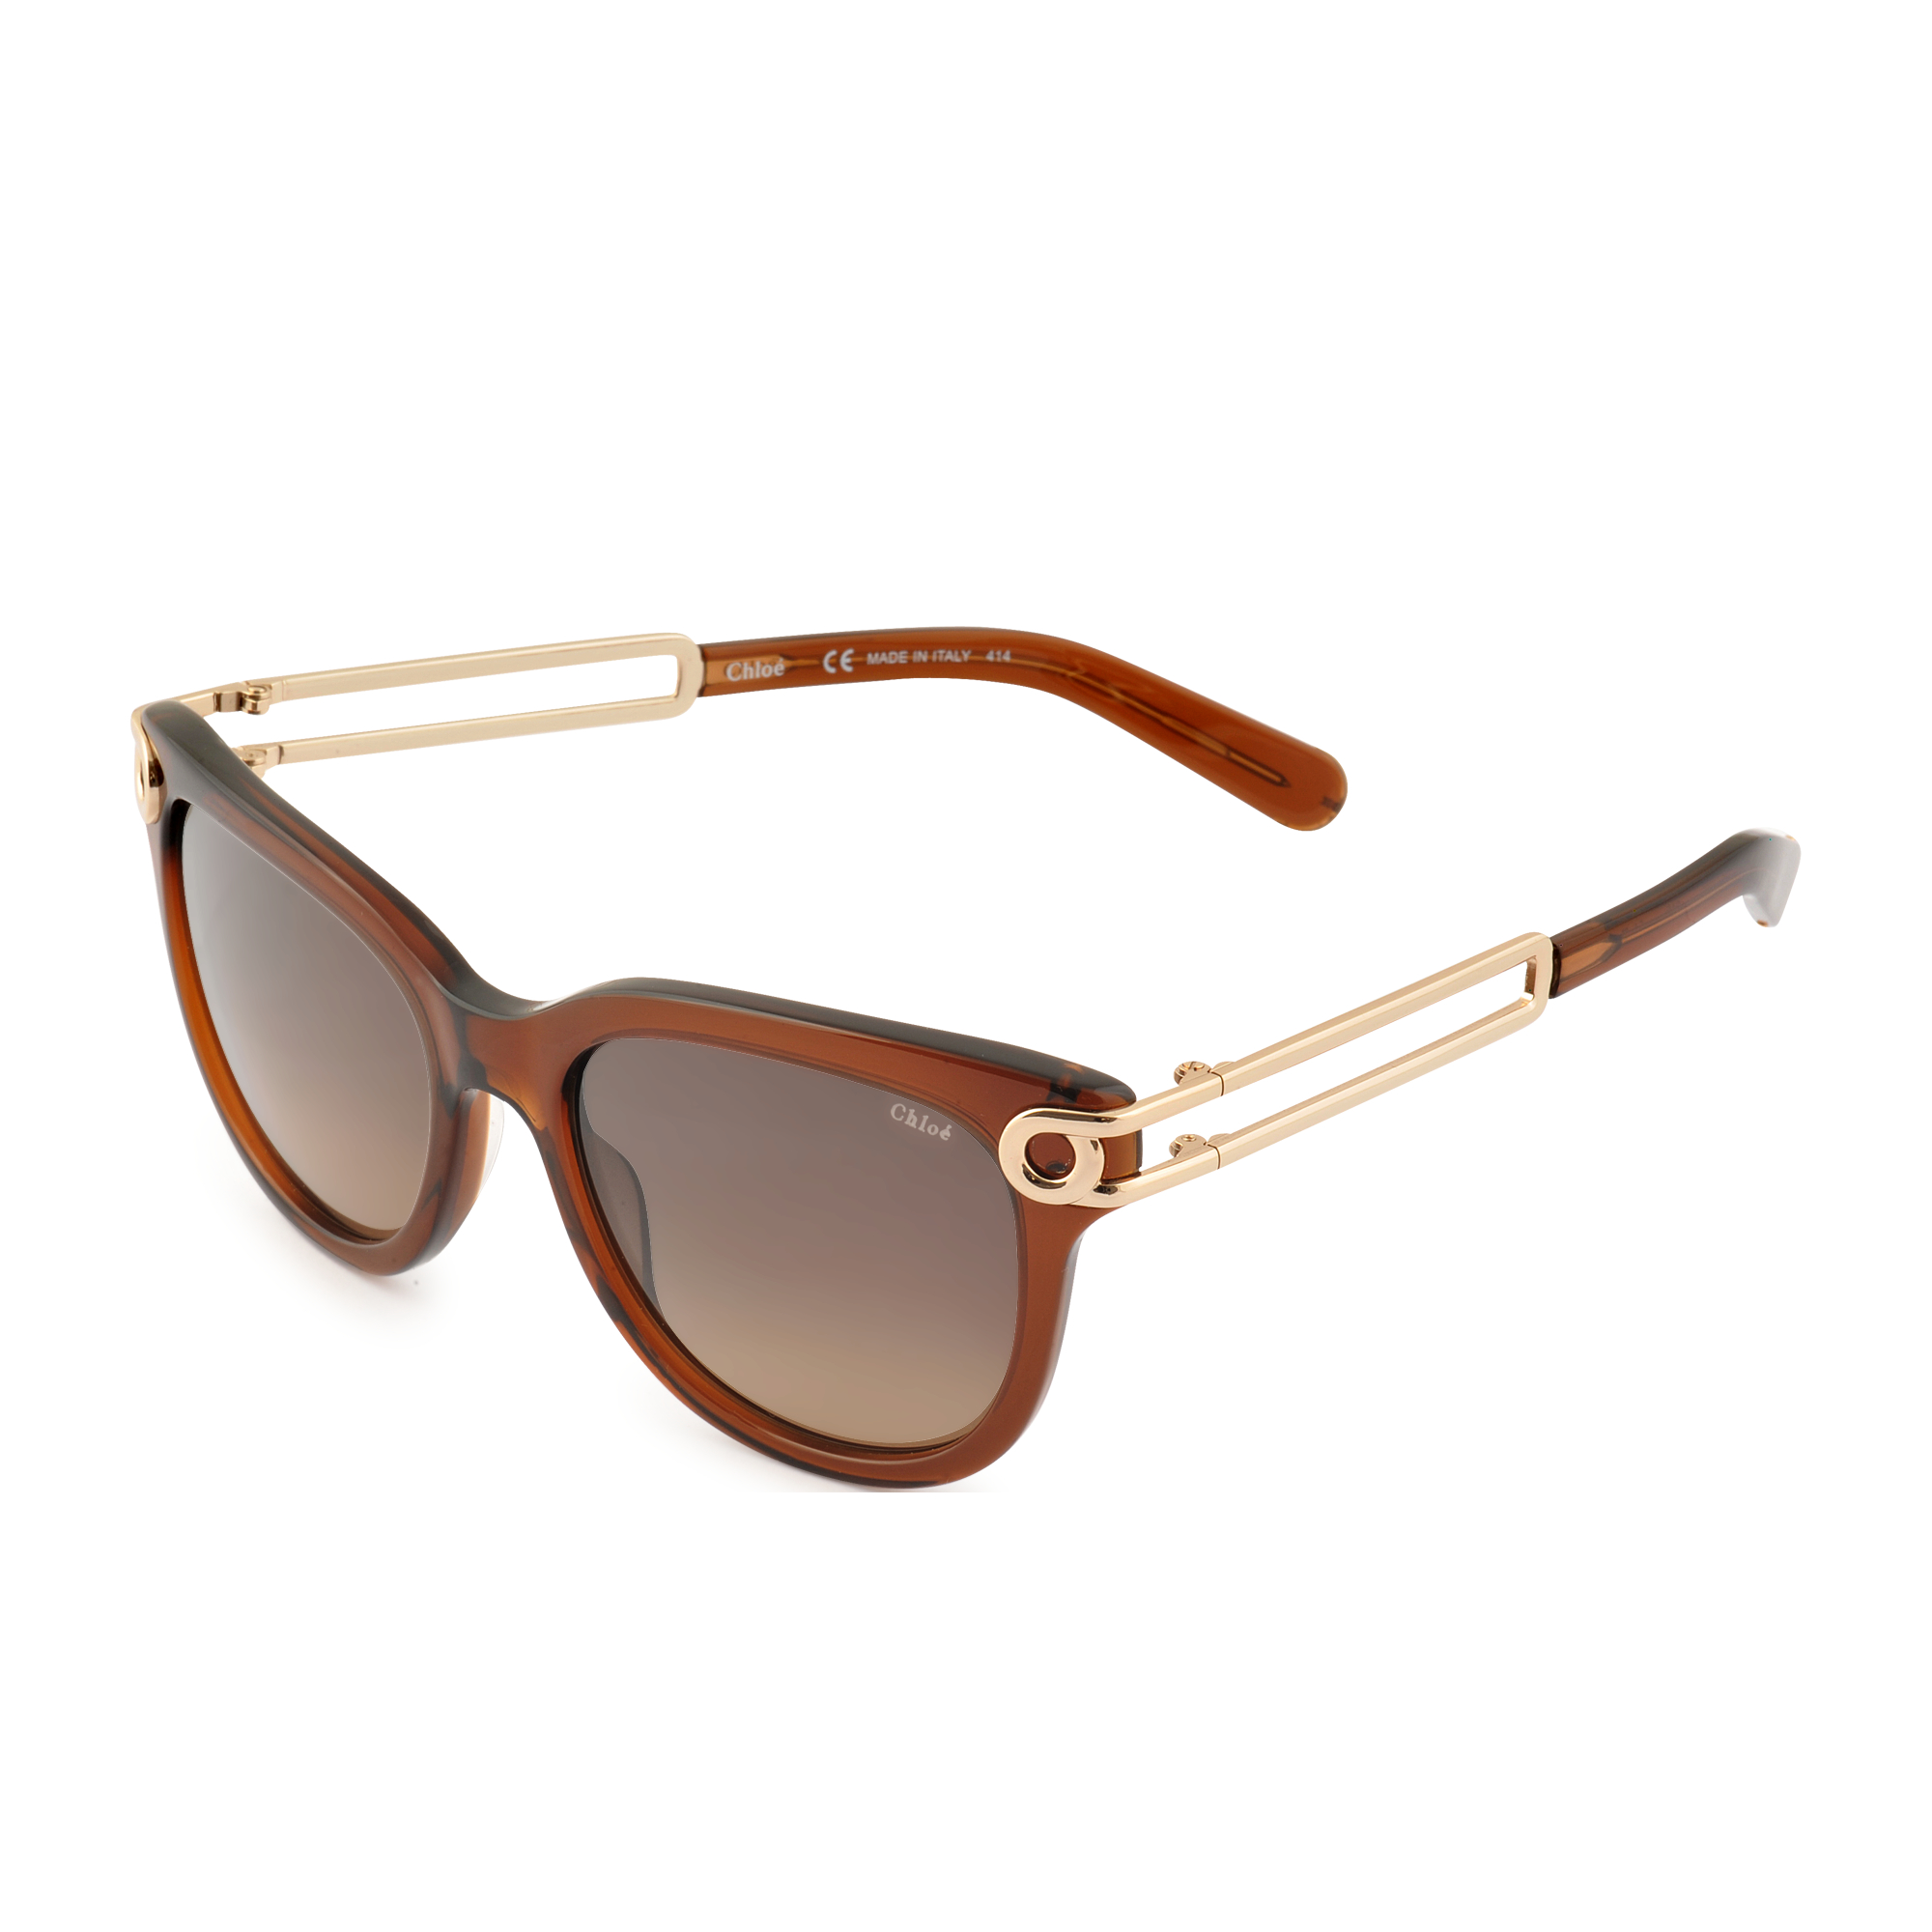 a802648155 Lyst - Chloé Ce679s Sunglasses in Brown